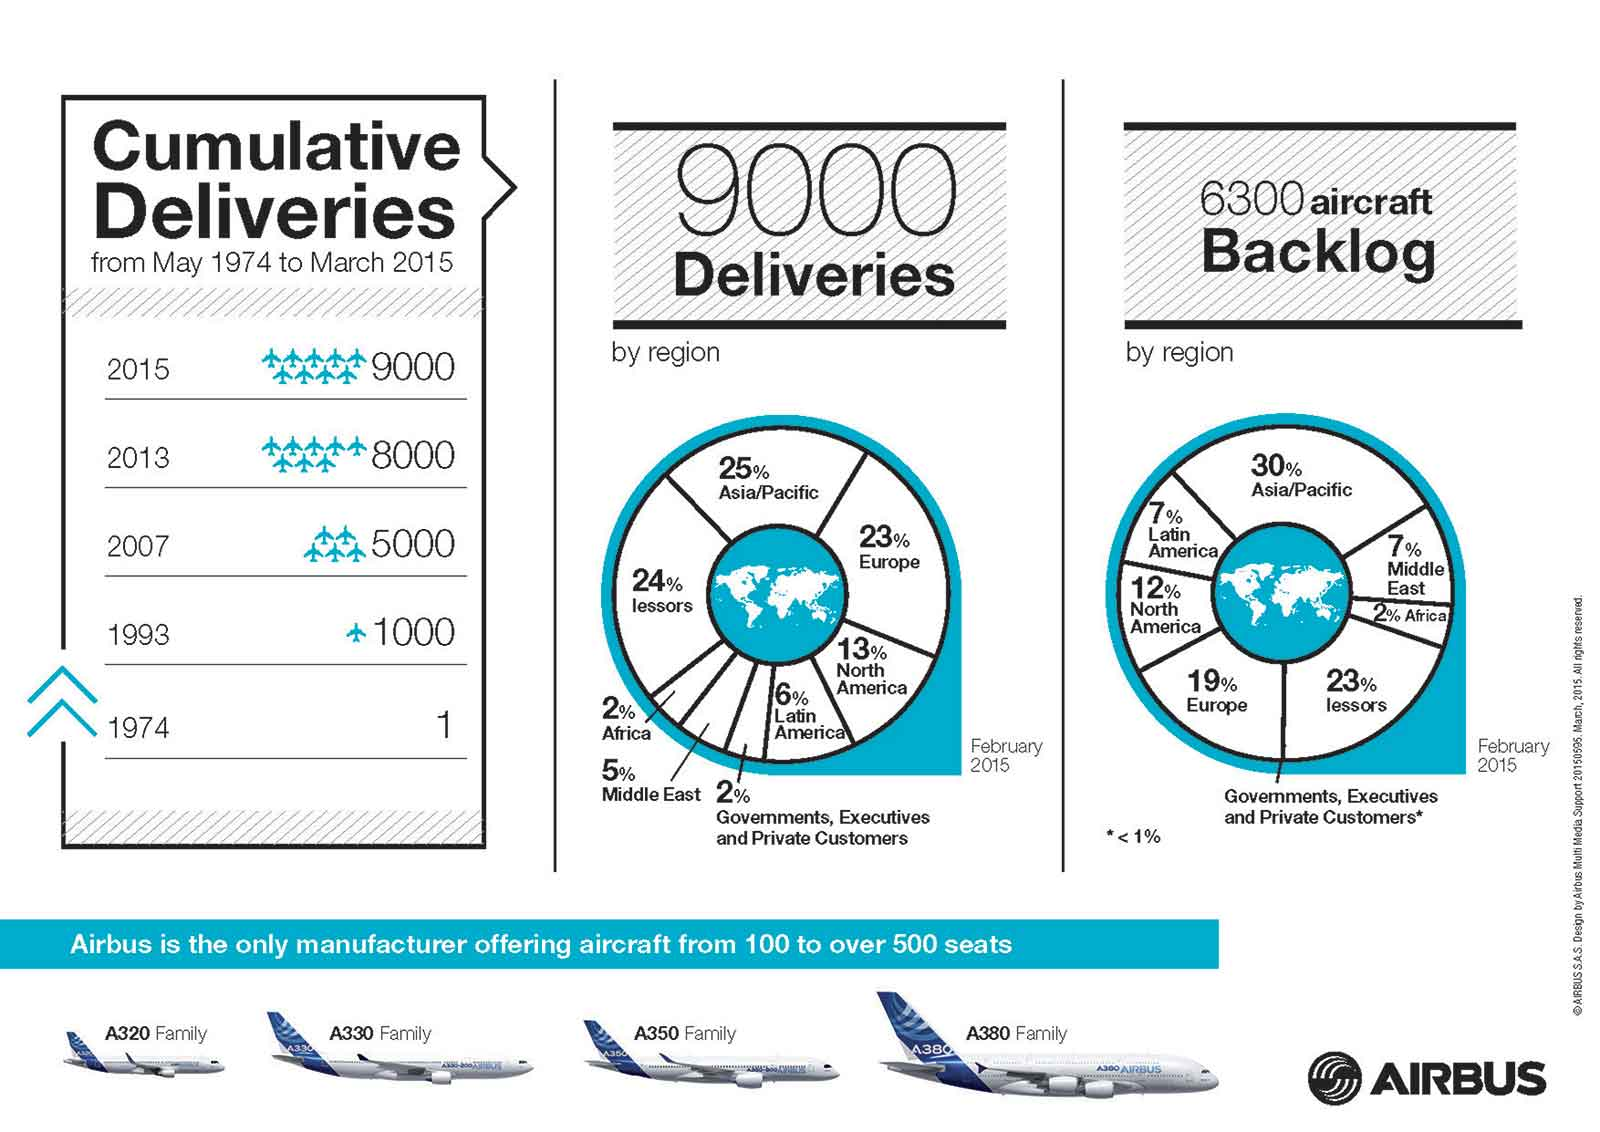 Airbus Aircraft Deliveries - 9000th delivered 20th March 2015